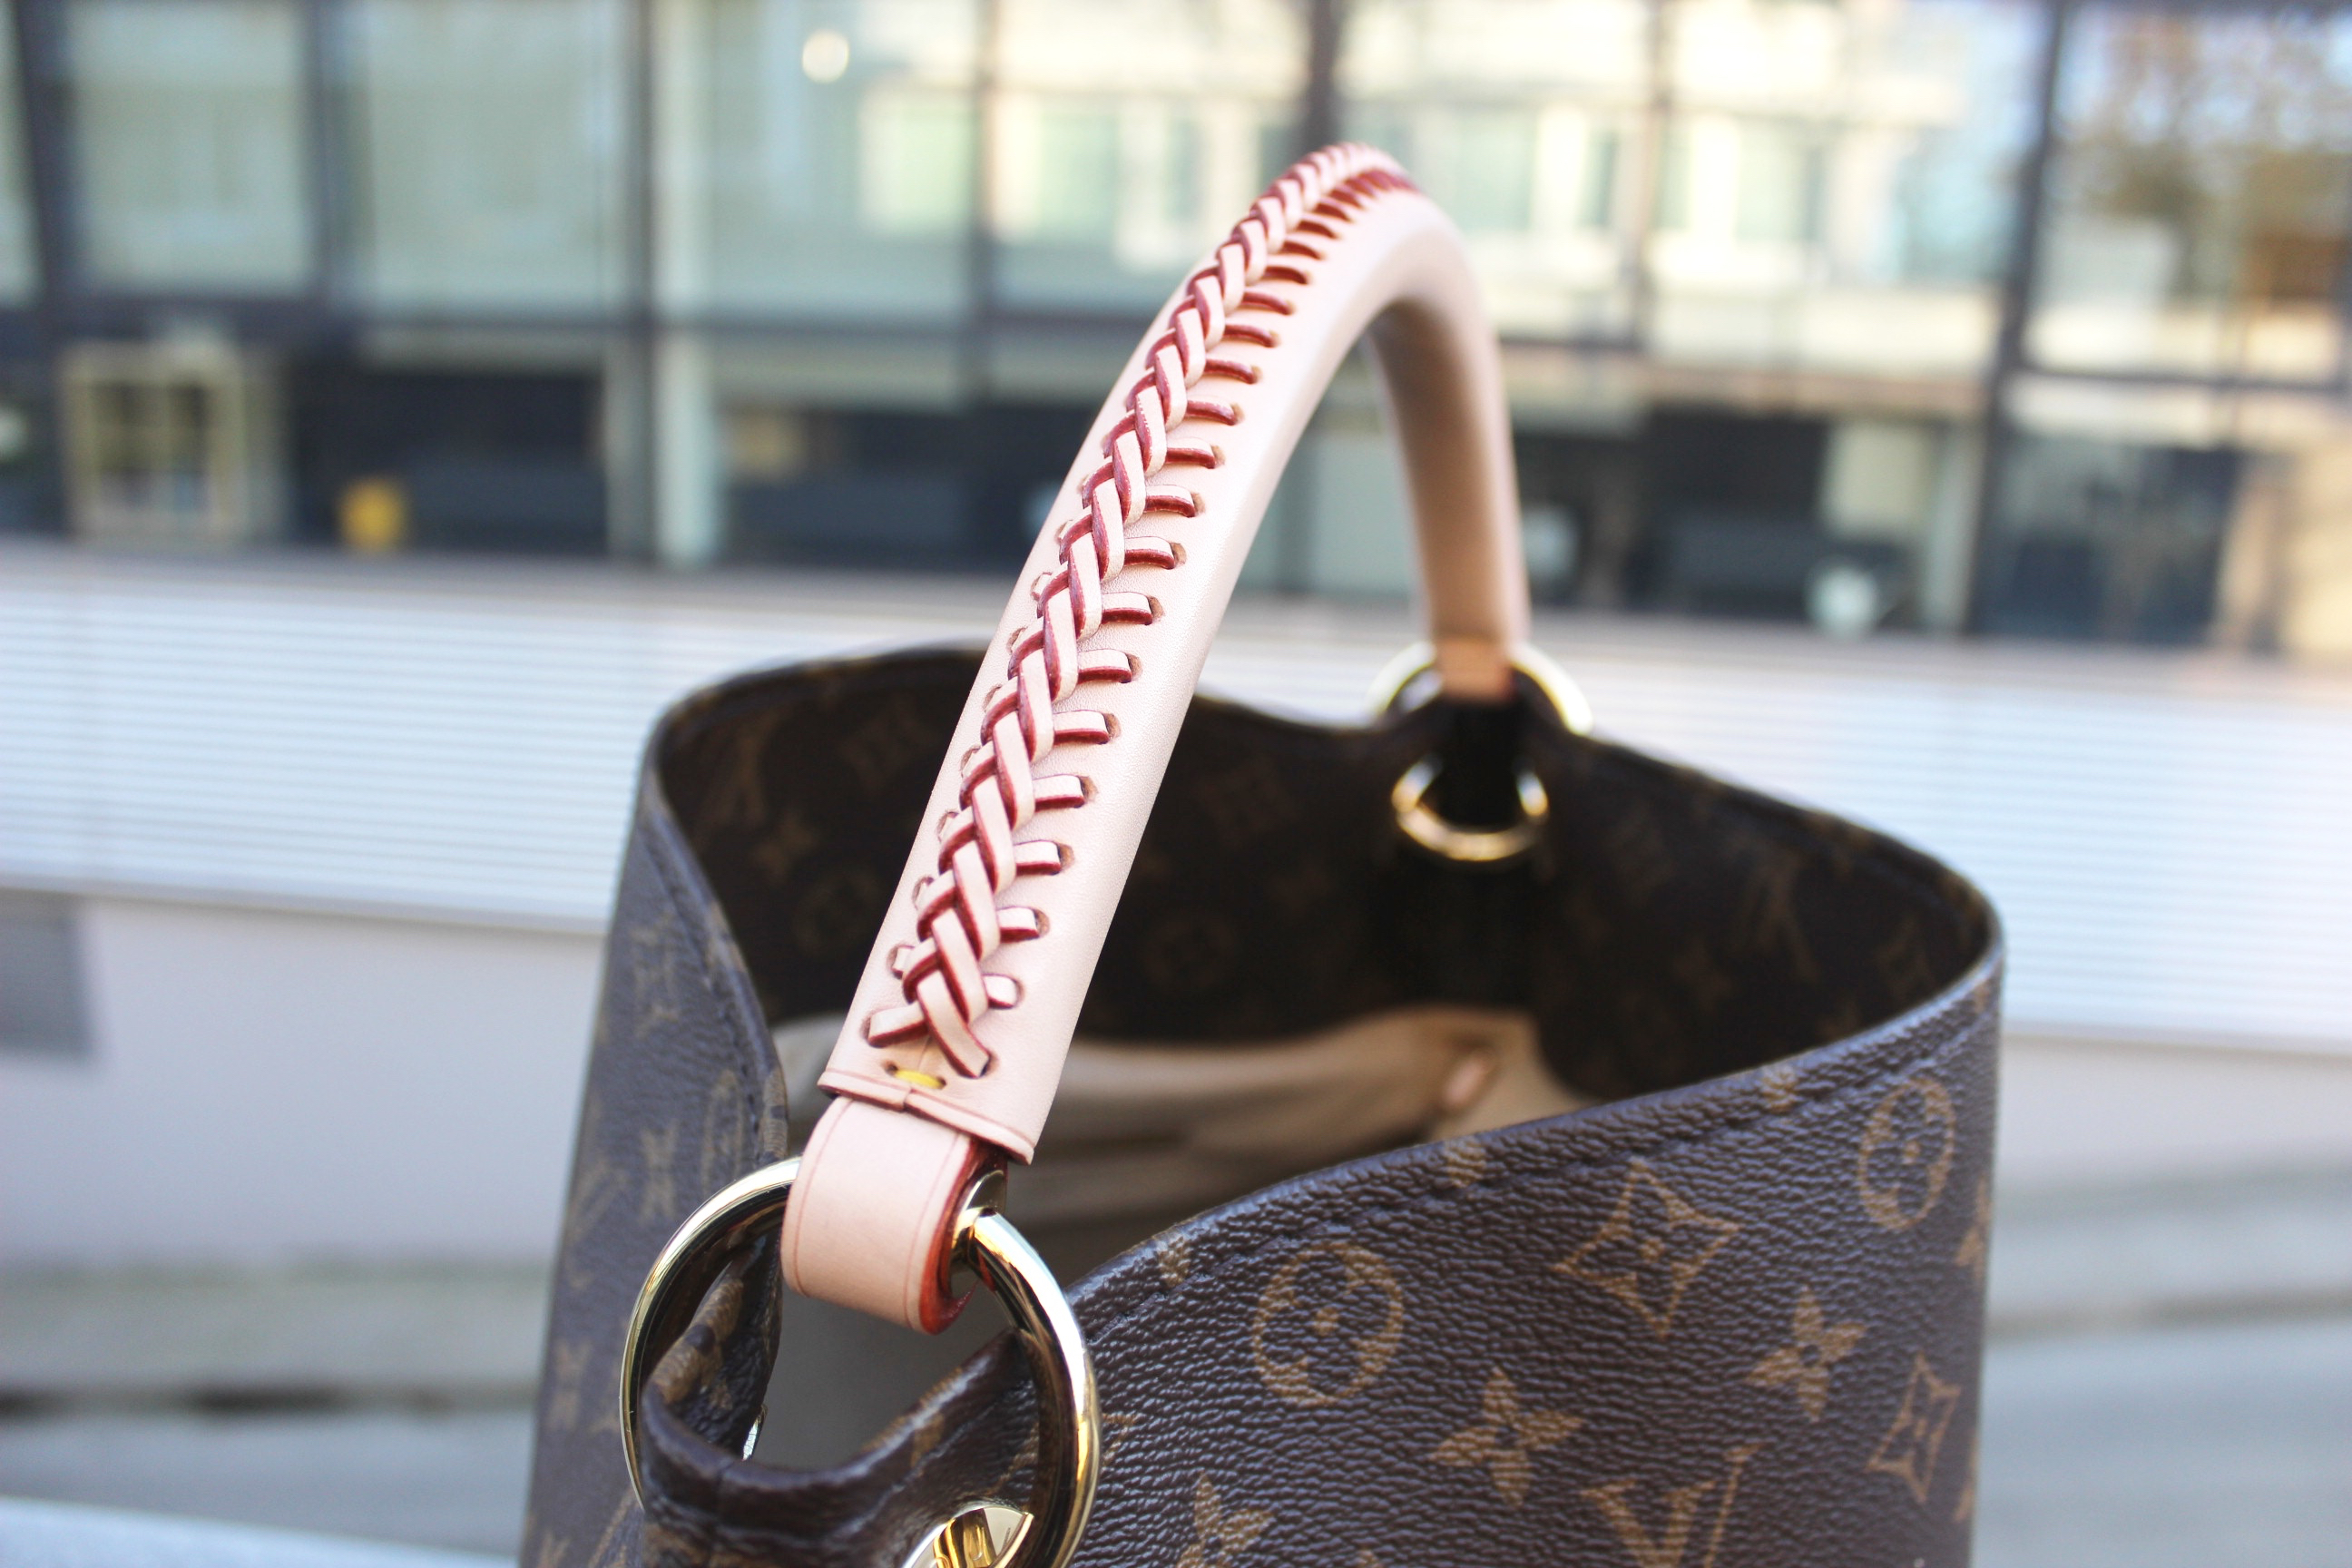 d2f8ffc29b57d Louis Vuitton Artsy Review Jenni testet Pepper And Gold Lifestyle